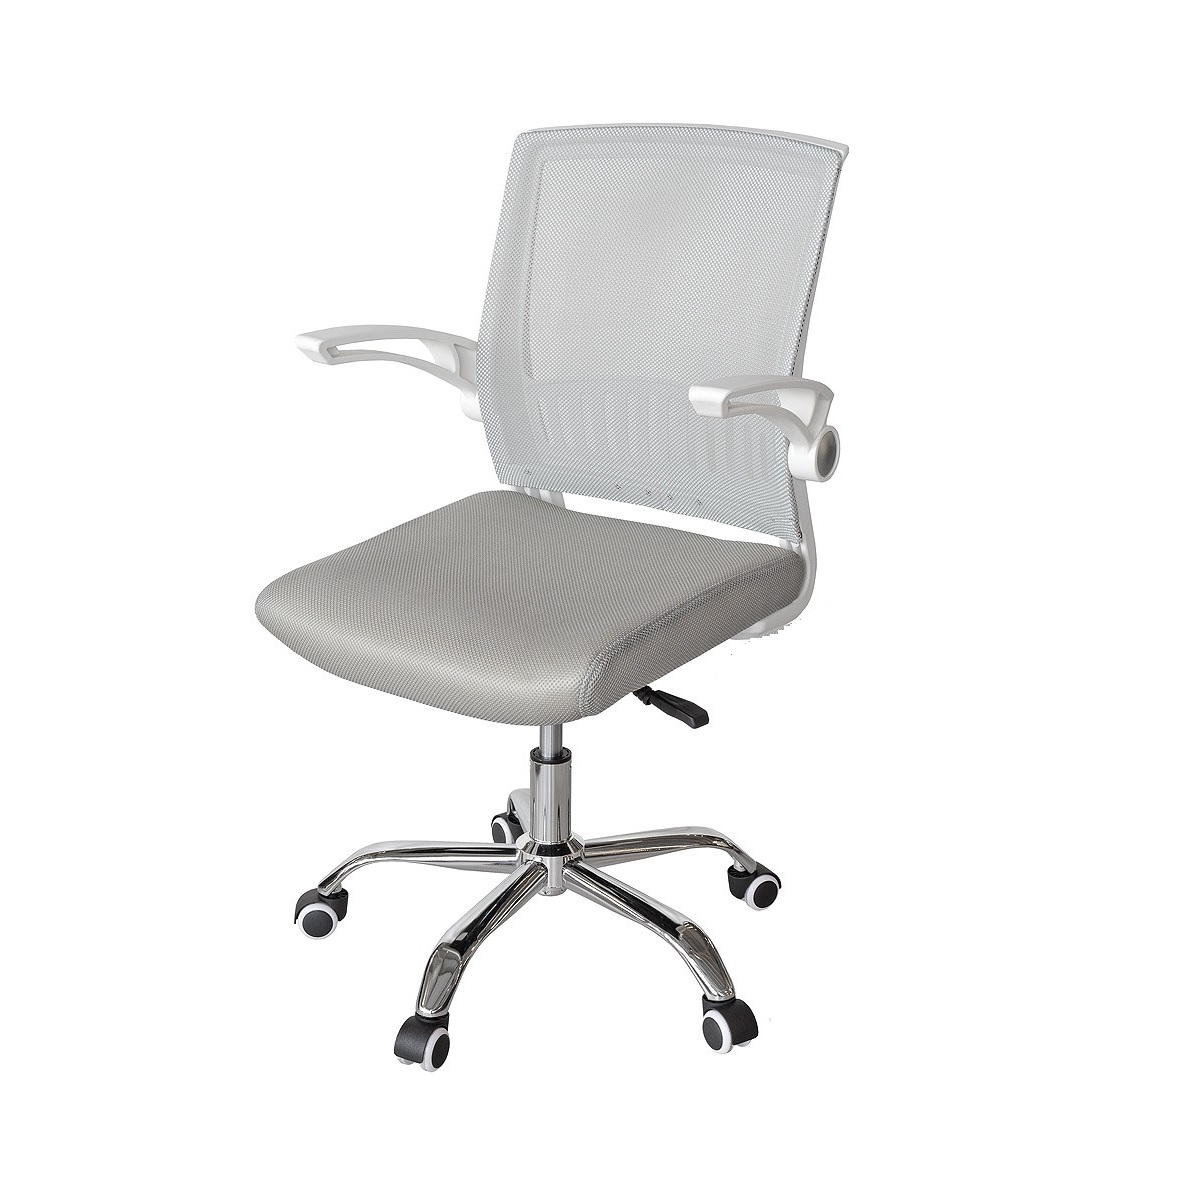 Bicester Mesh Office Chair In Grey And White With Chrome Base_1